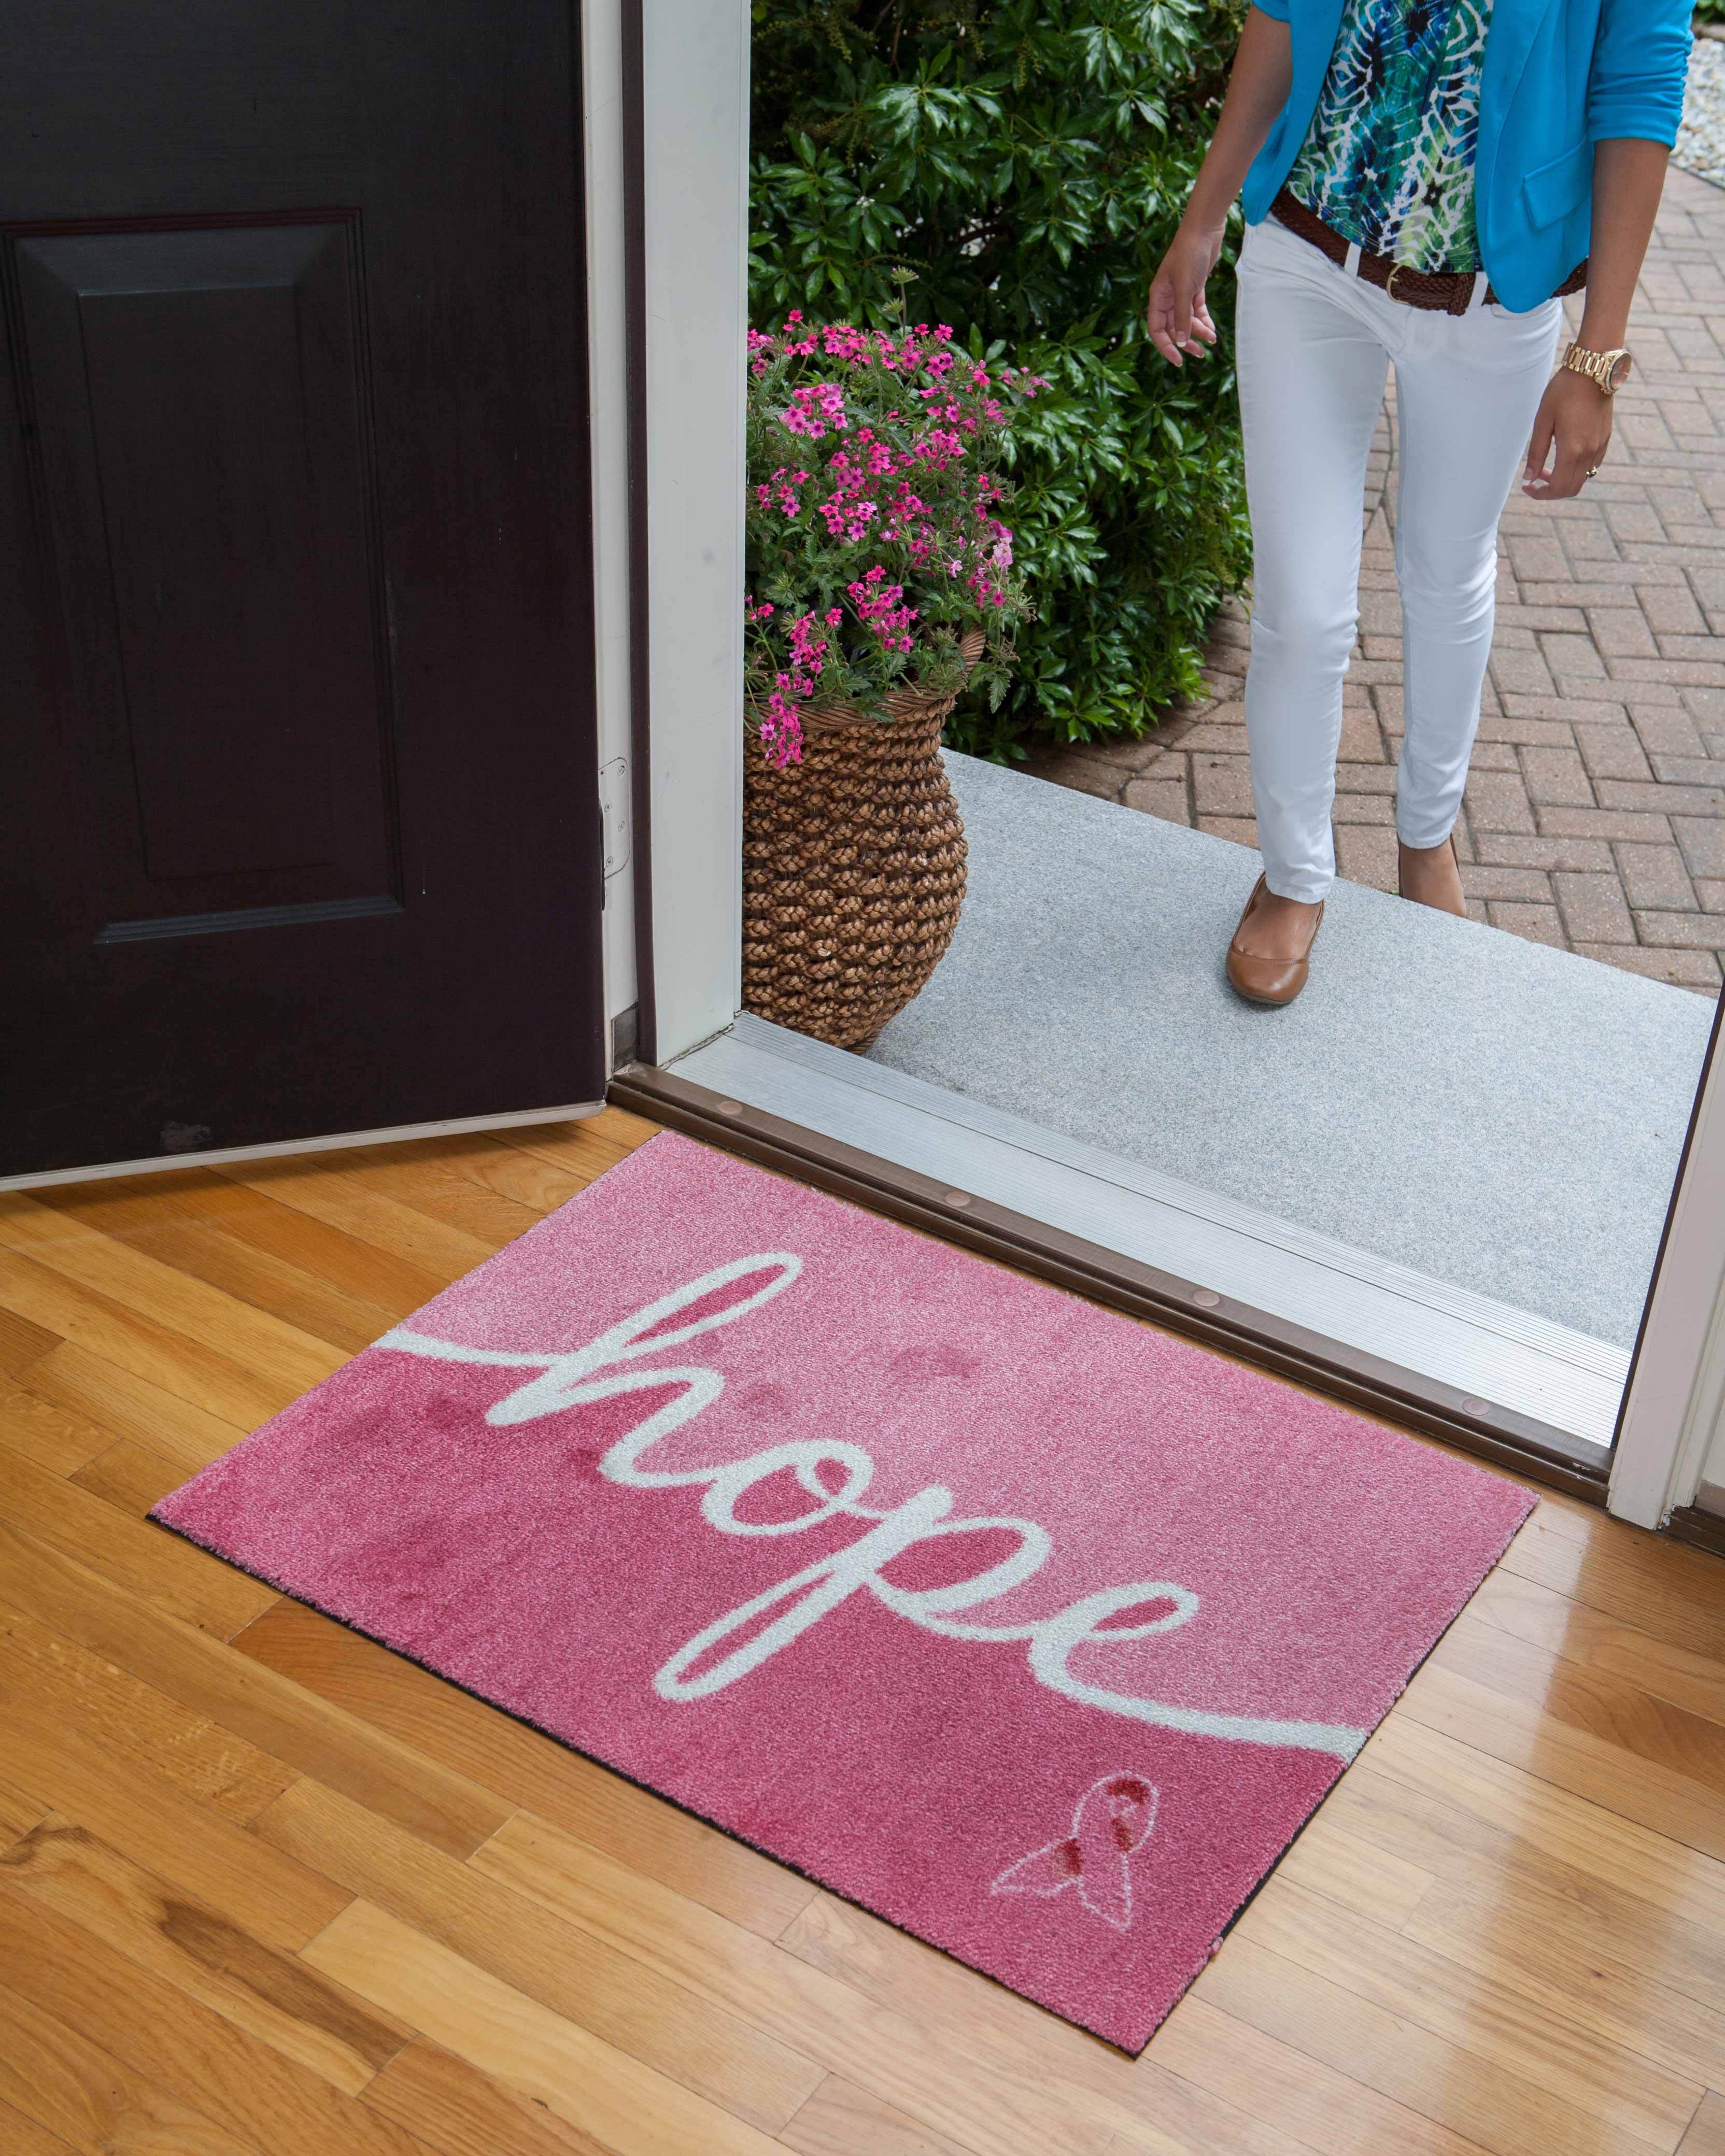 Mat Training Nh: Carpet One Floor & Home Introduces New Collection Of